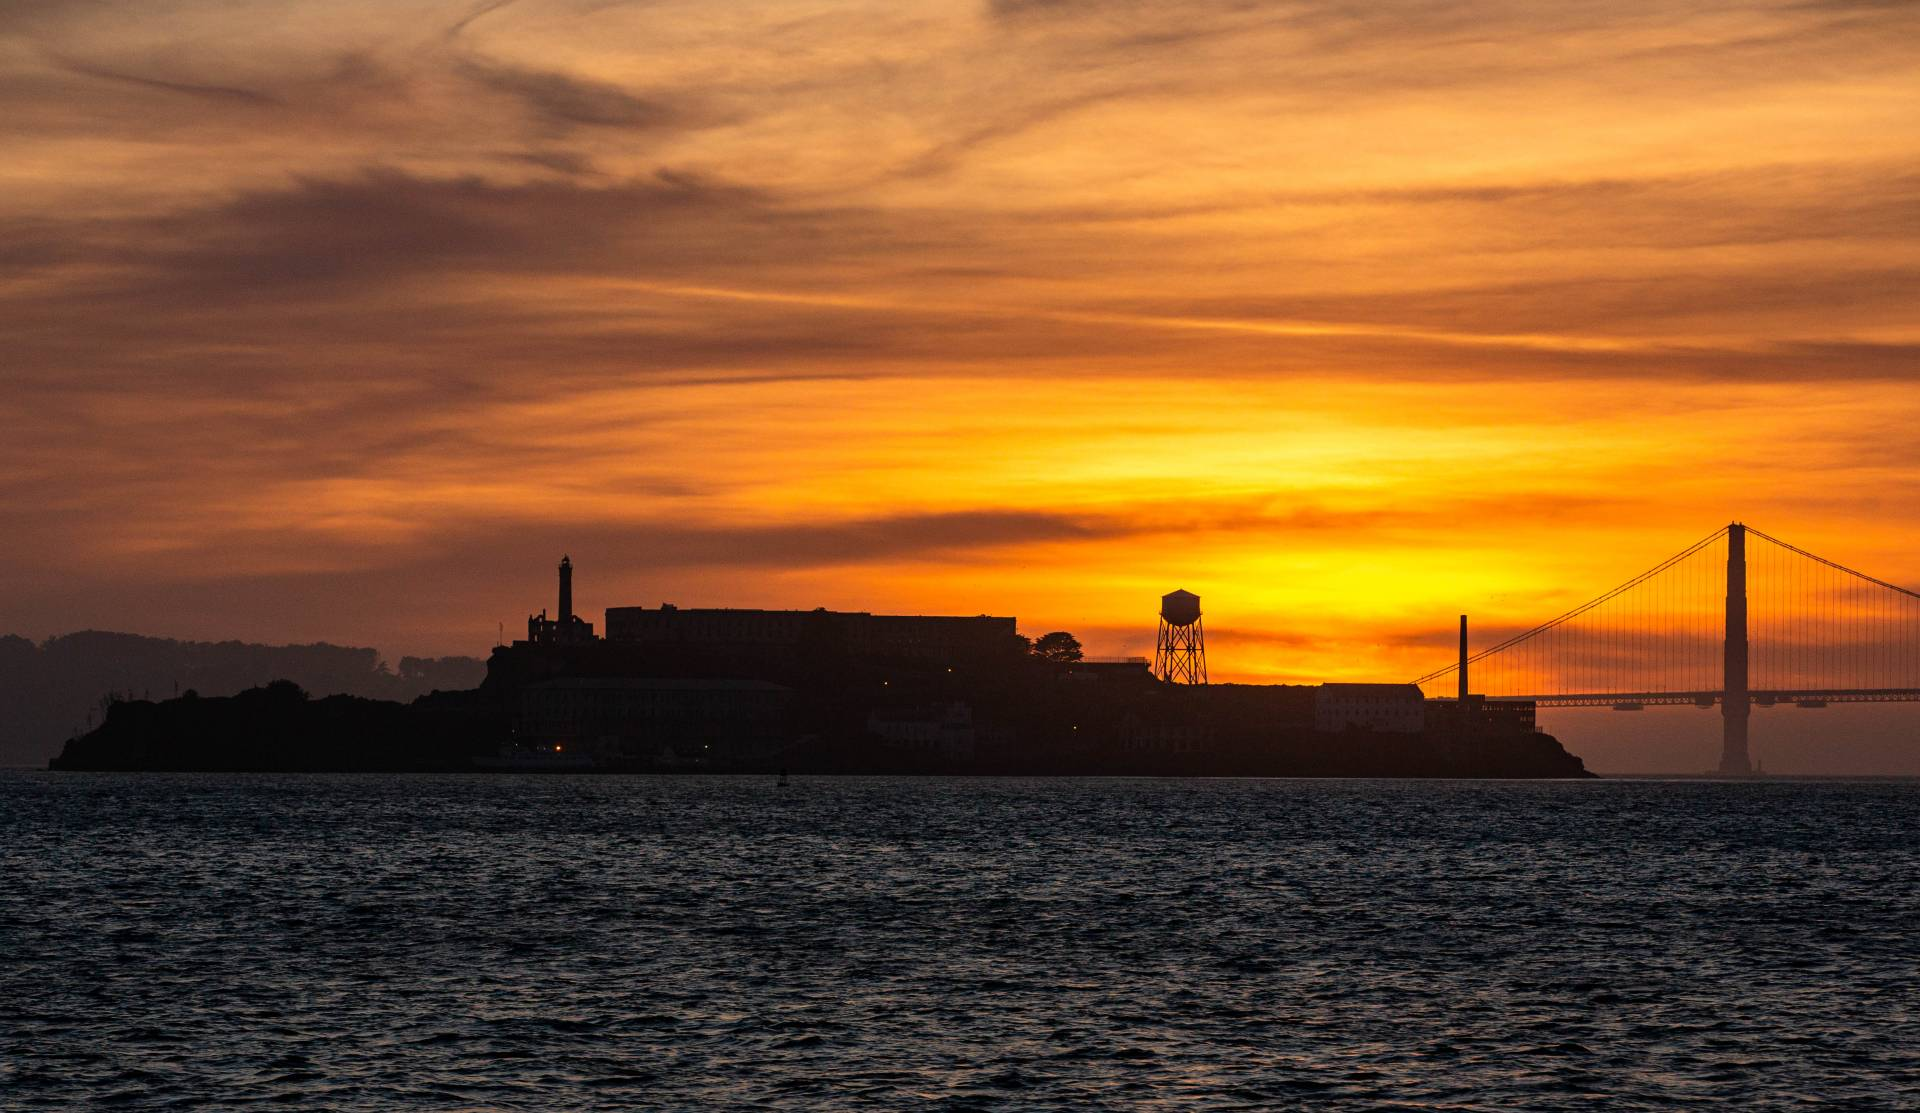 <strong>Red sky at night, rain lovers take fright</strong>: The Bay Area has seen plenty of memorable sunsets — this one silhouetting Alcatraz earlier this month — but little rain so far this winter. The outlook for the next several weeks is for continued dry weather.  Dan Brekke/KQED